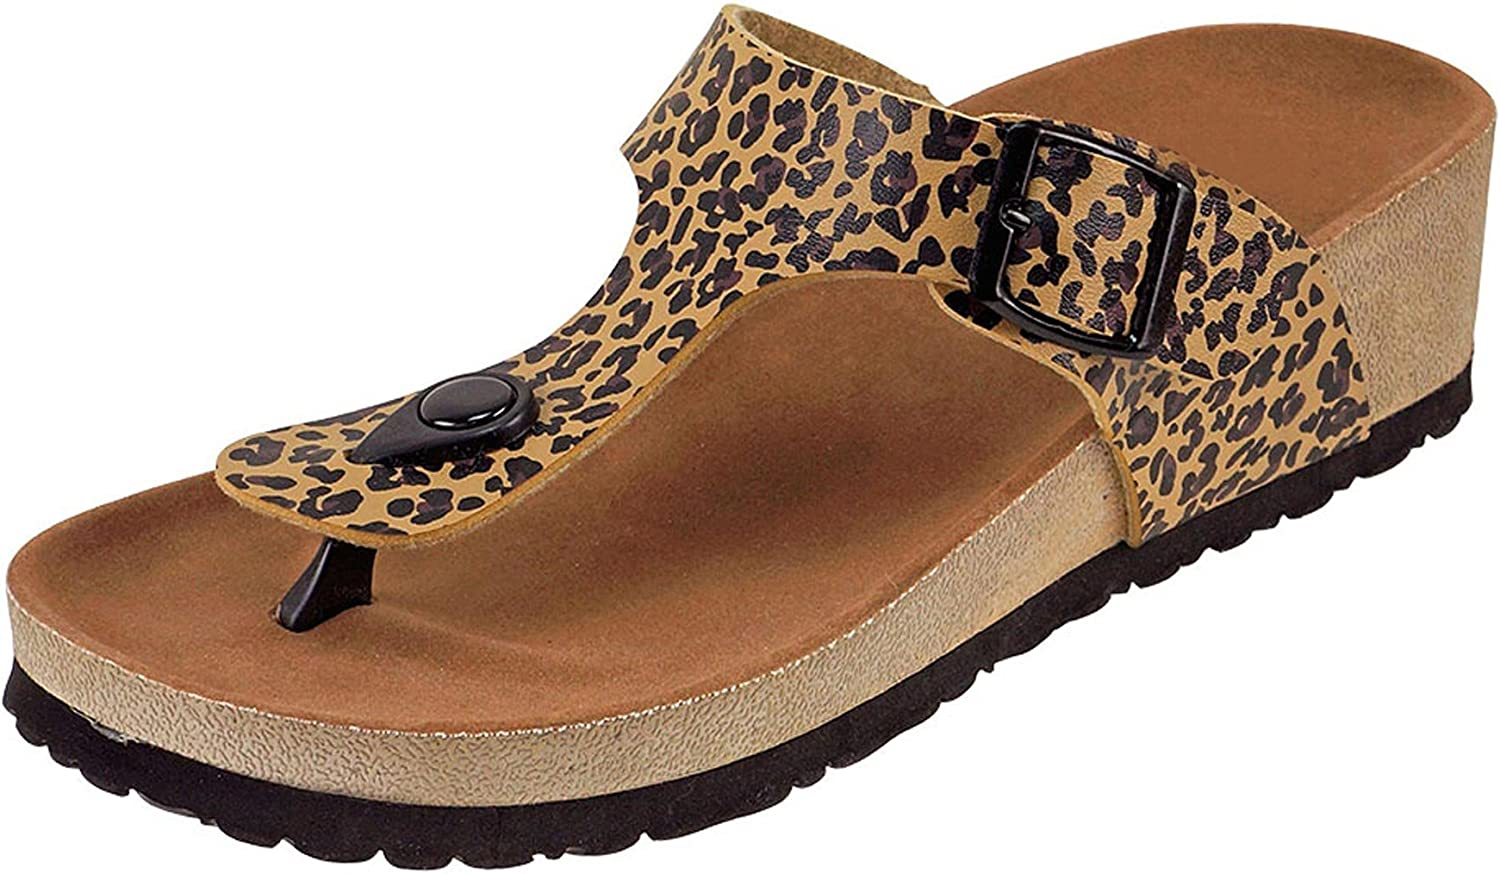 Cambridge Select Women's Thong Toe Slip On Slide Wedge Sandal